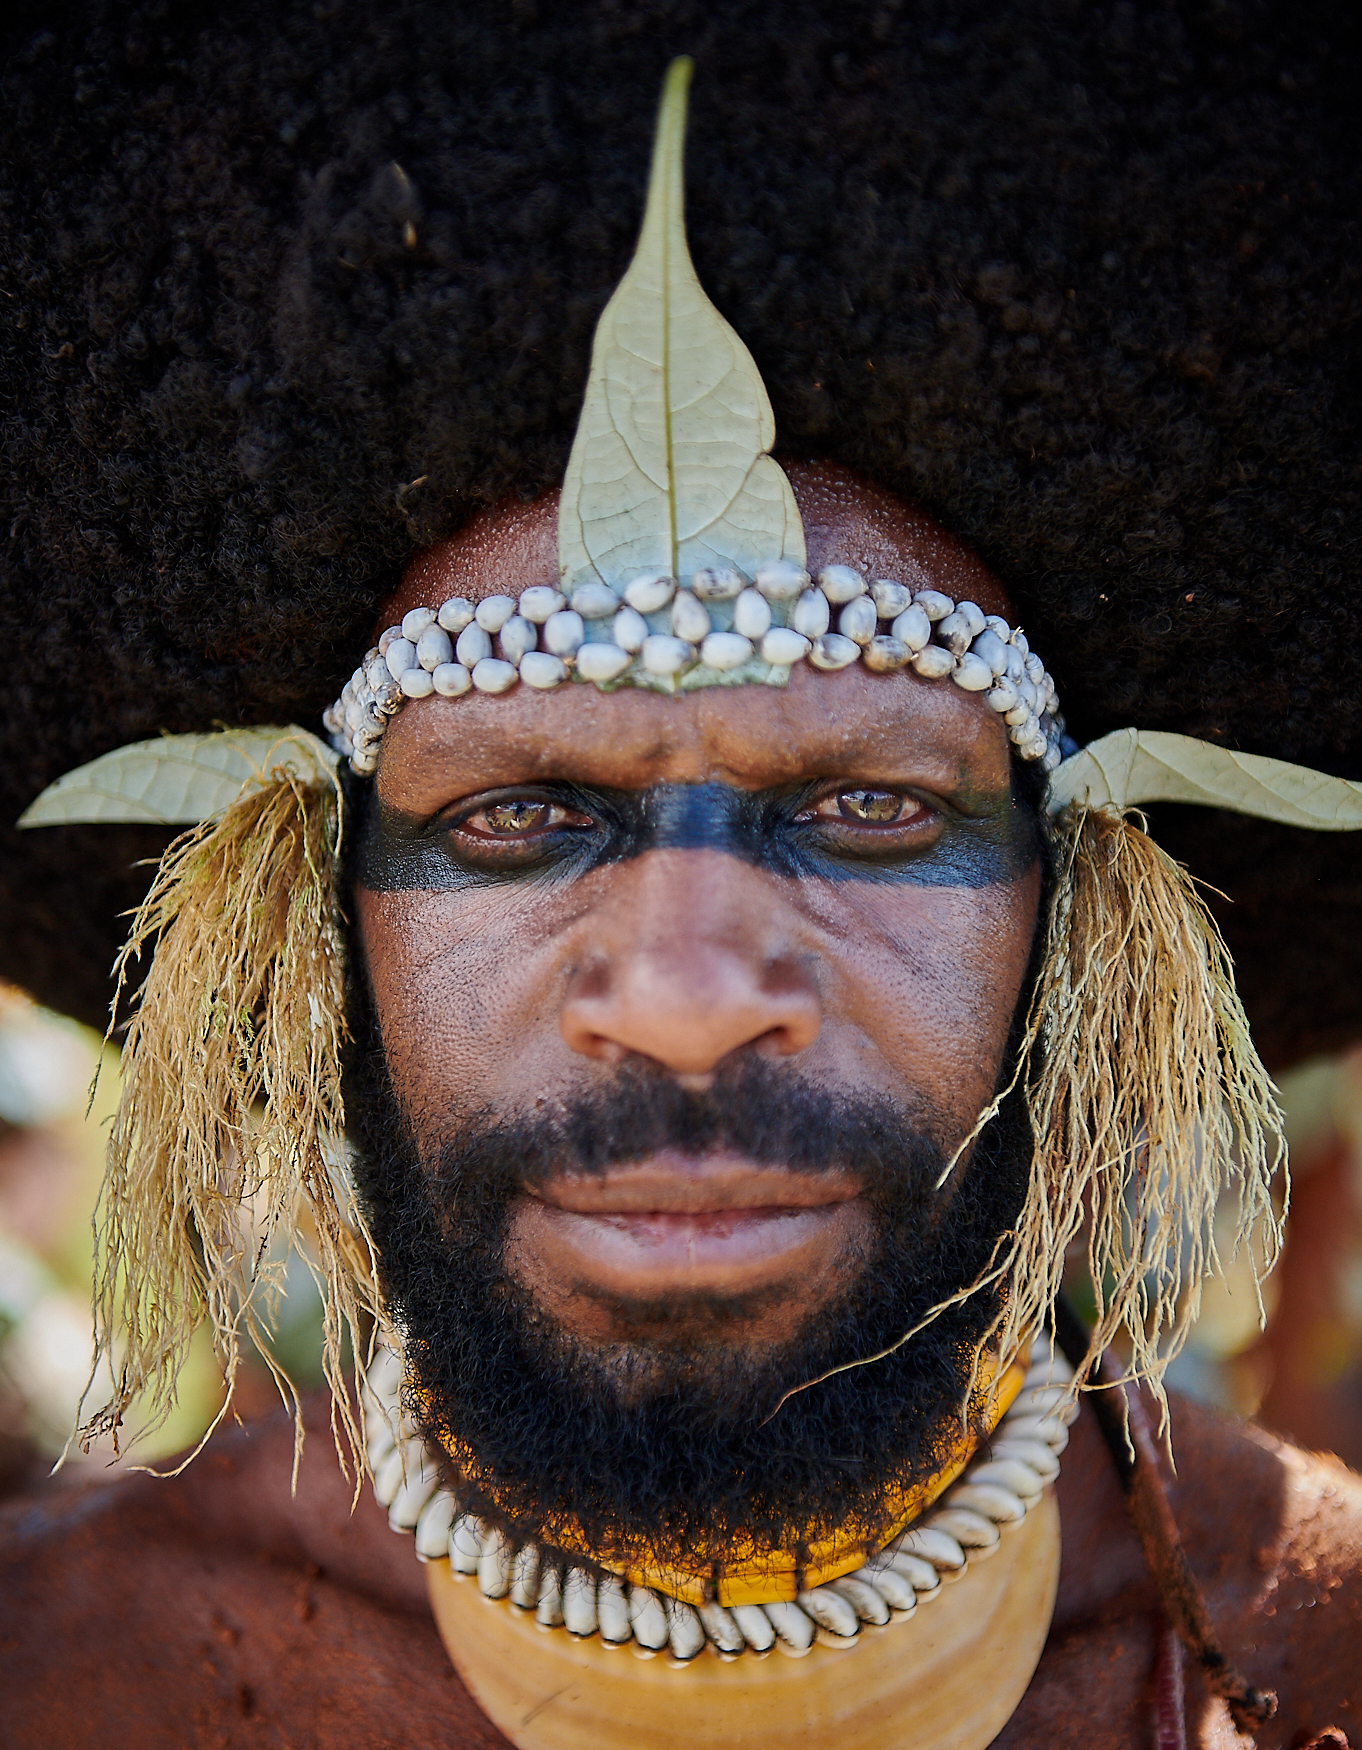 suli muli warrior, papua new guinea